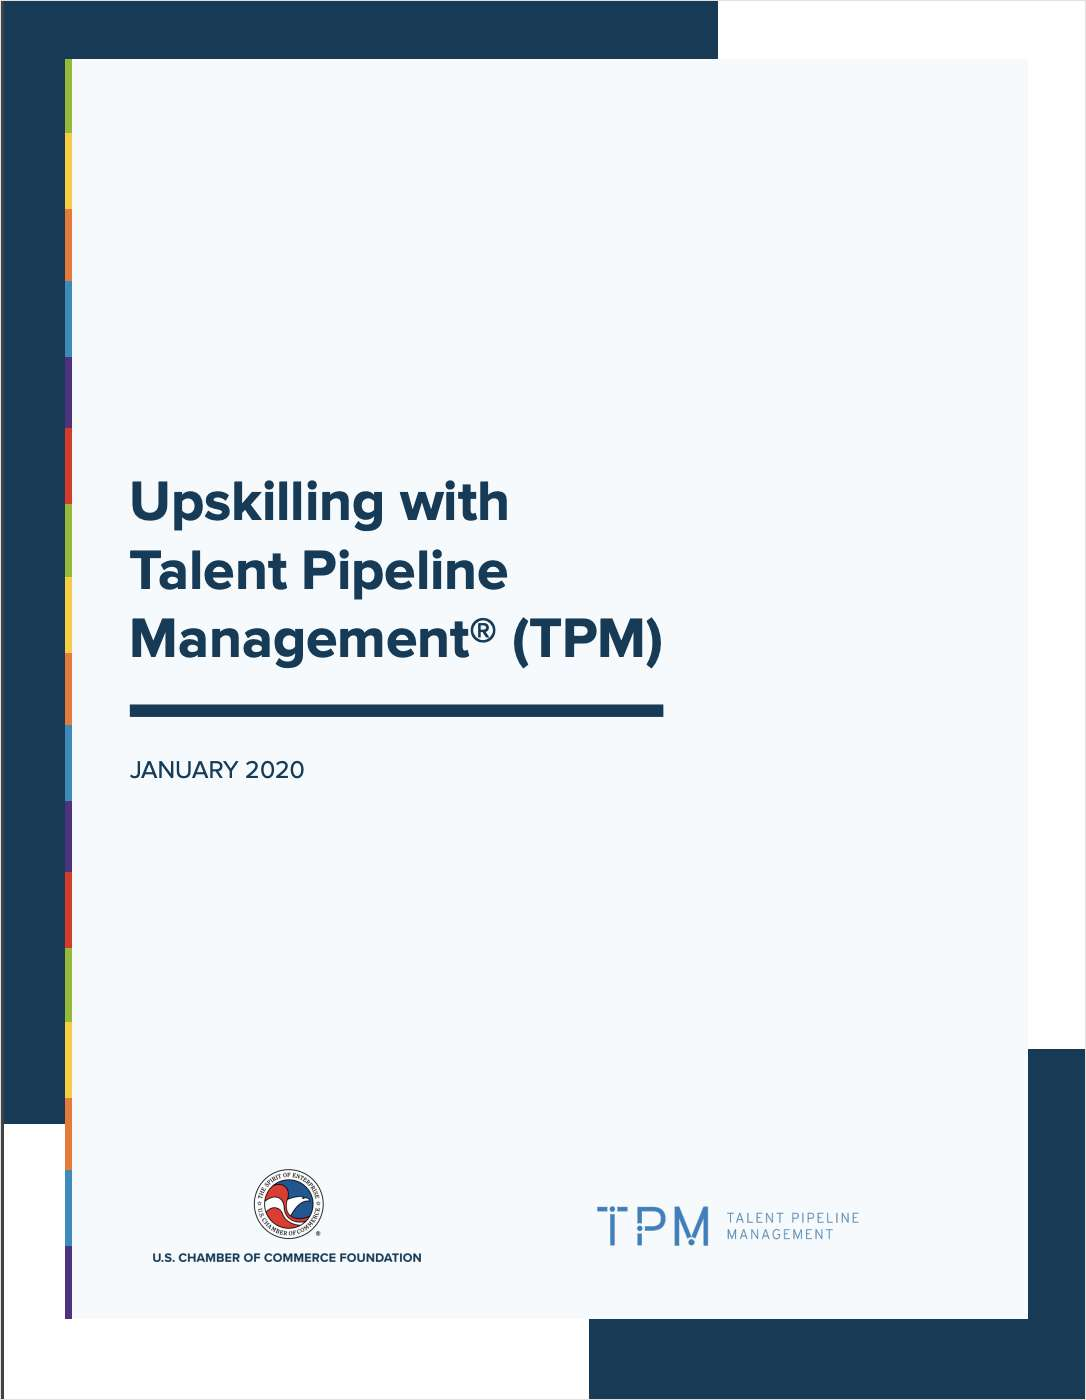 Upskilling with Talent Pipeline Management (TPM)